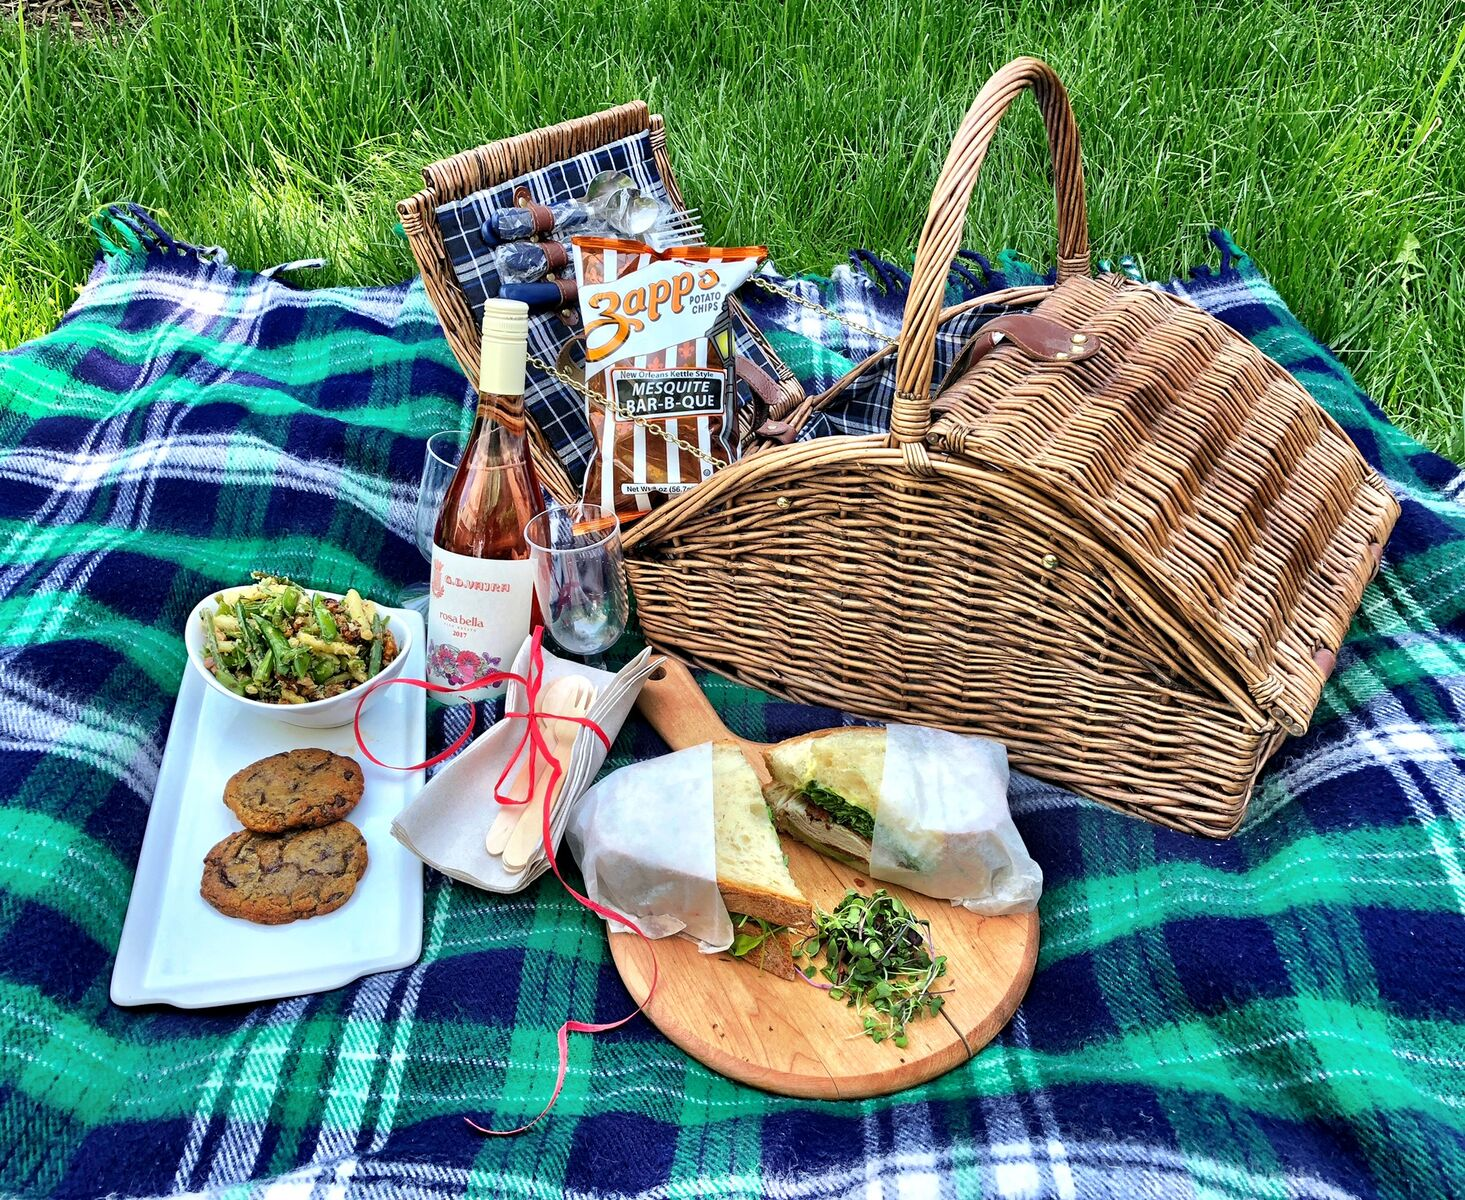 The 14th street restaurant and market offers two pre-packaged picnic spreads for two featuring a choice of either fried chicken or gourmet sandwiches, along with sides and desserts.  (Image: Courtesy Cork)